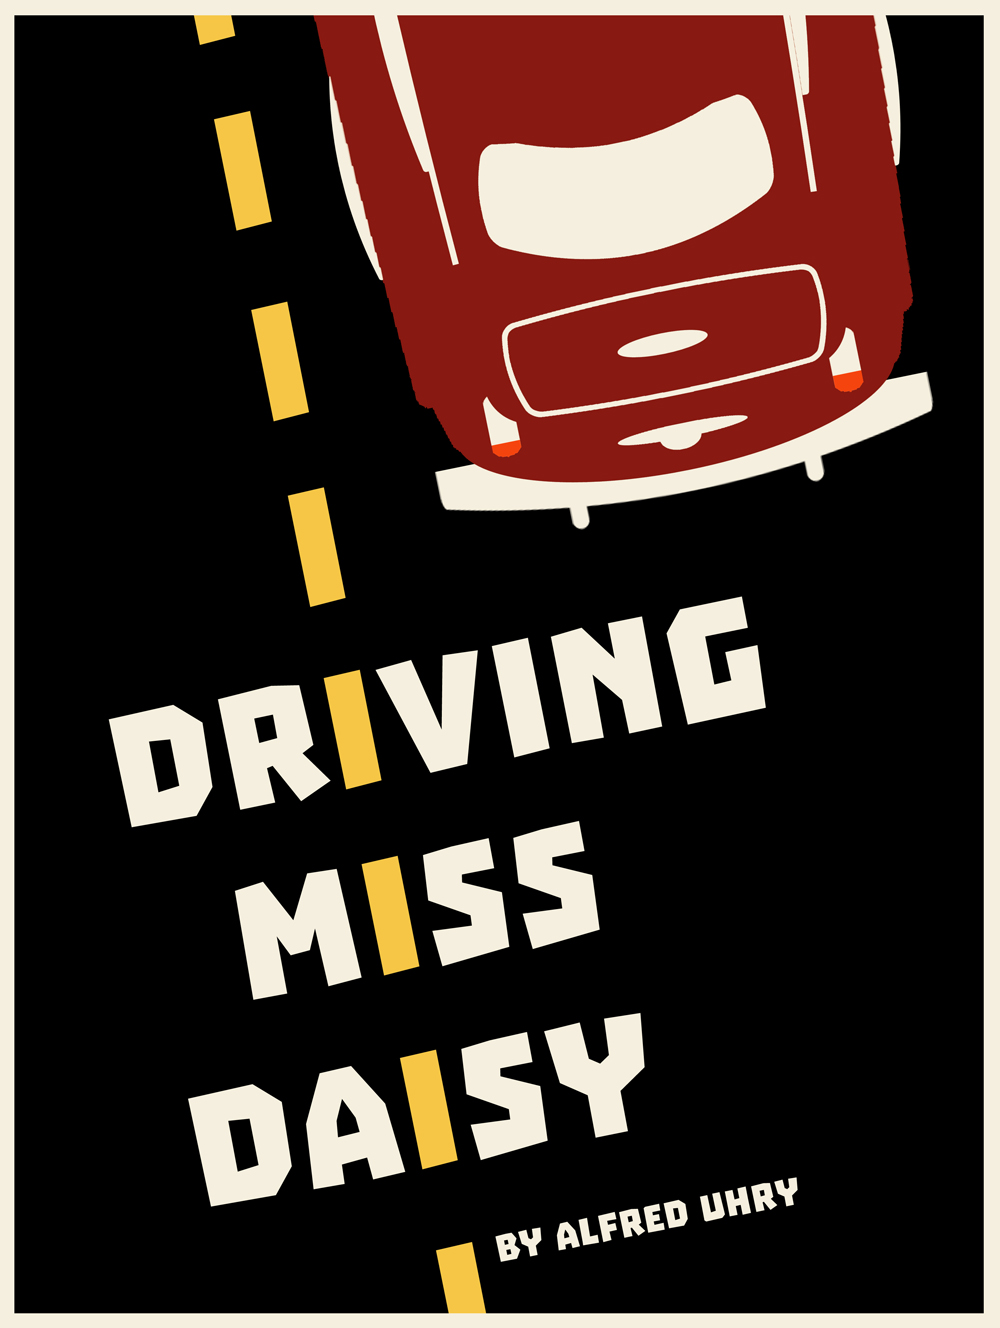 driving miss daisy essay questions Driving miss daisy film analysis essay creative writing thesis proposal by опубликовано: 02 май 2018 обновлено.